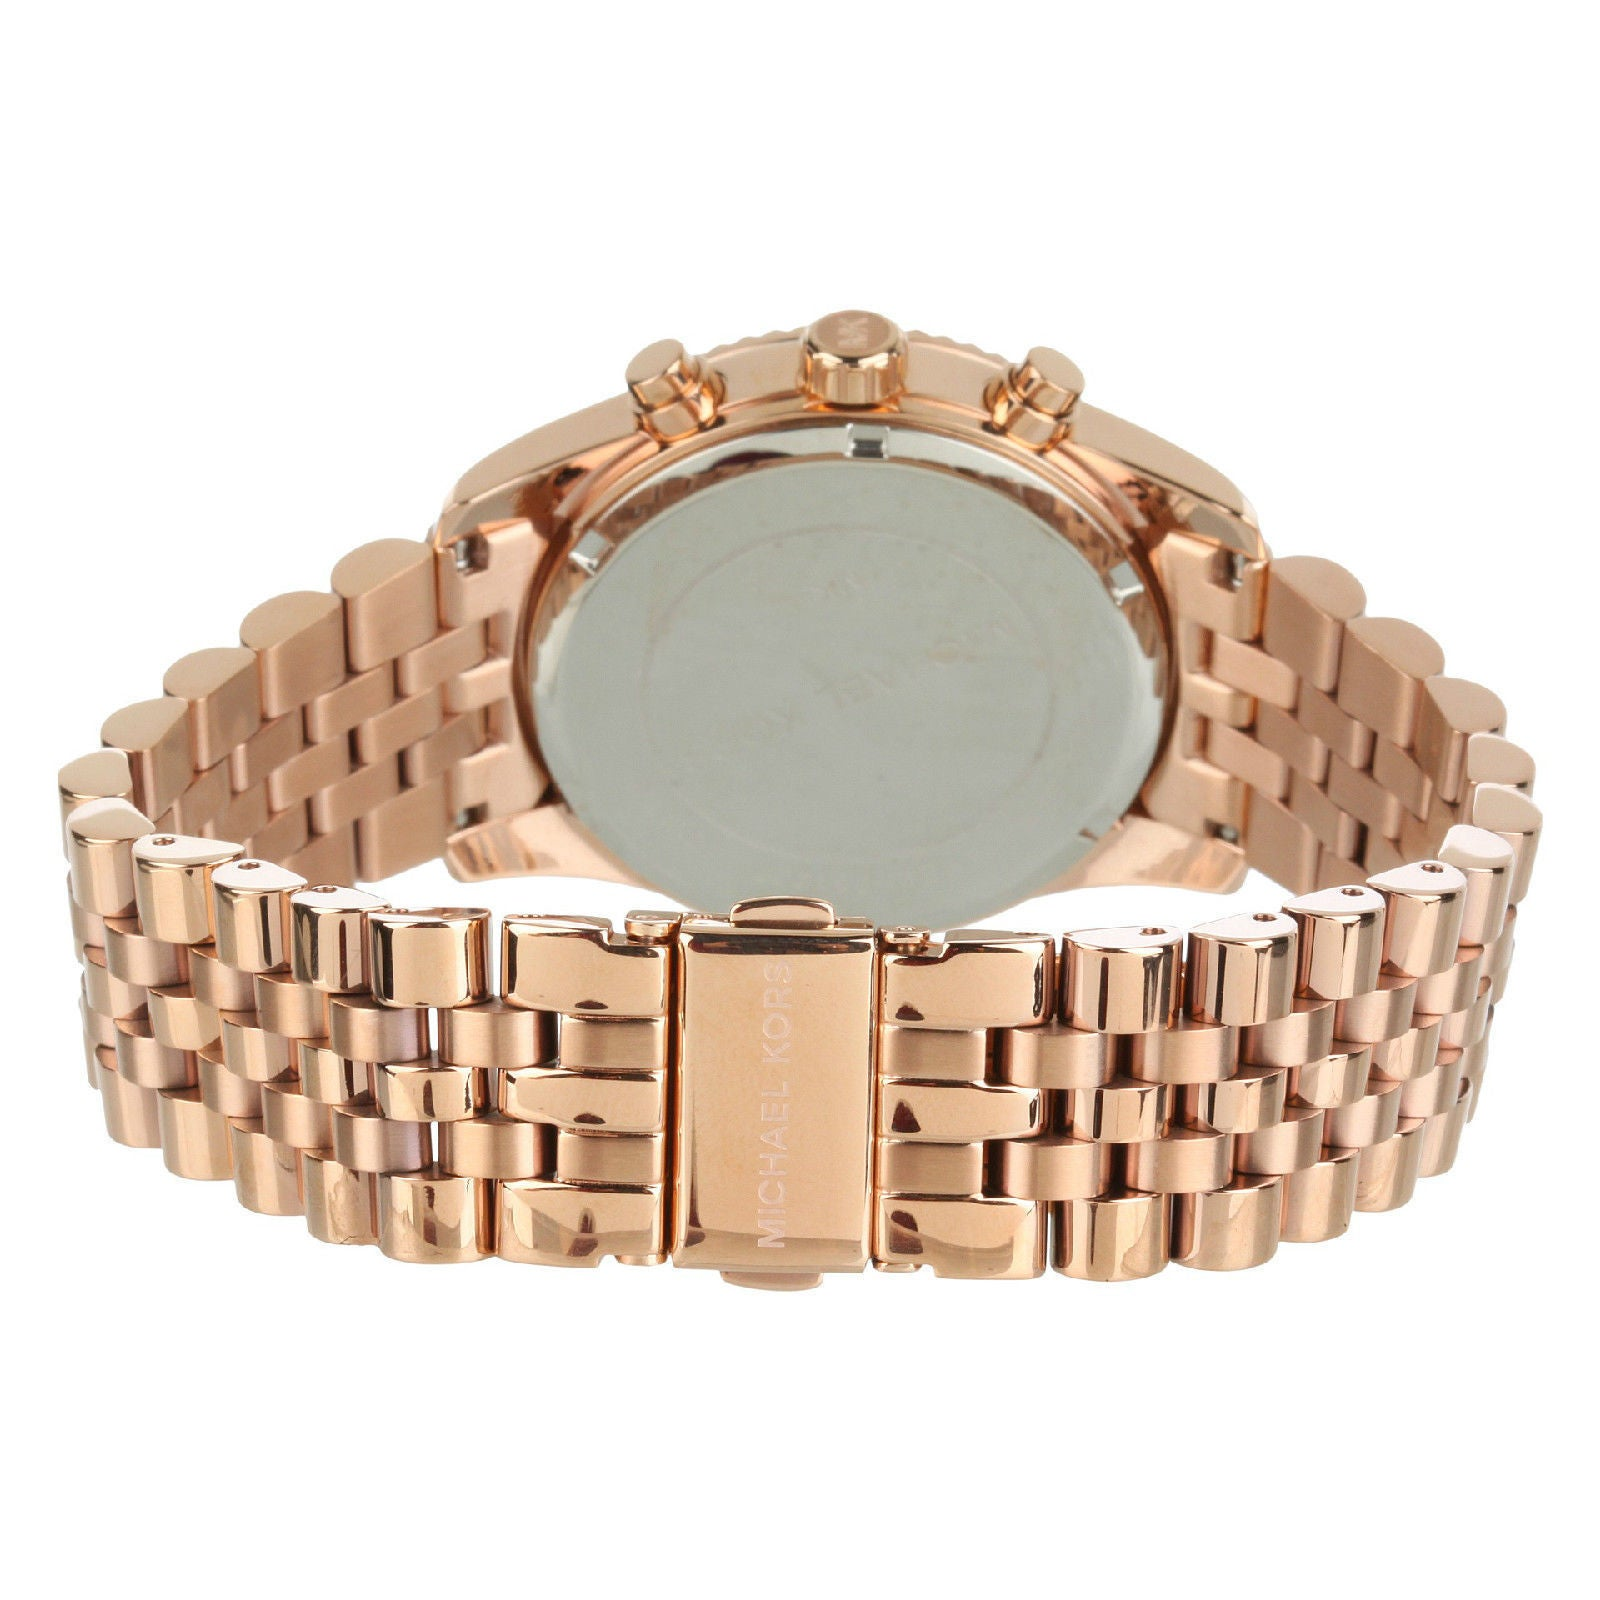 503f2a9cfb54 Shop Michael Kors Women s MK5569  Lexington  Rose Gold-Tone Watch - Free  Shipping Today - Overstock - 7942212